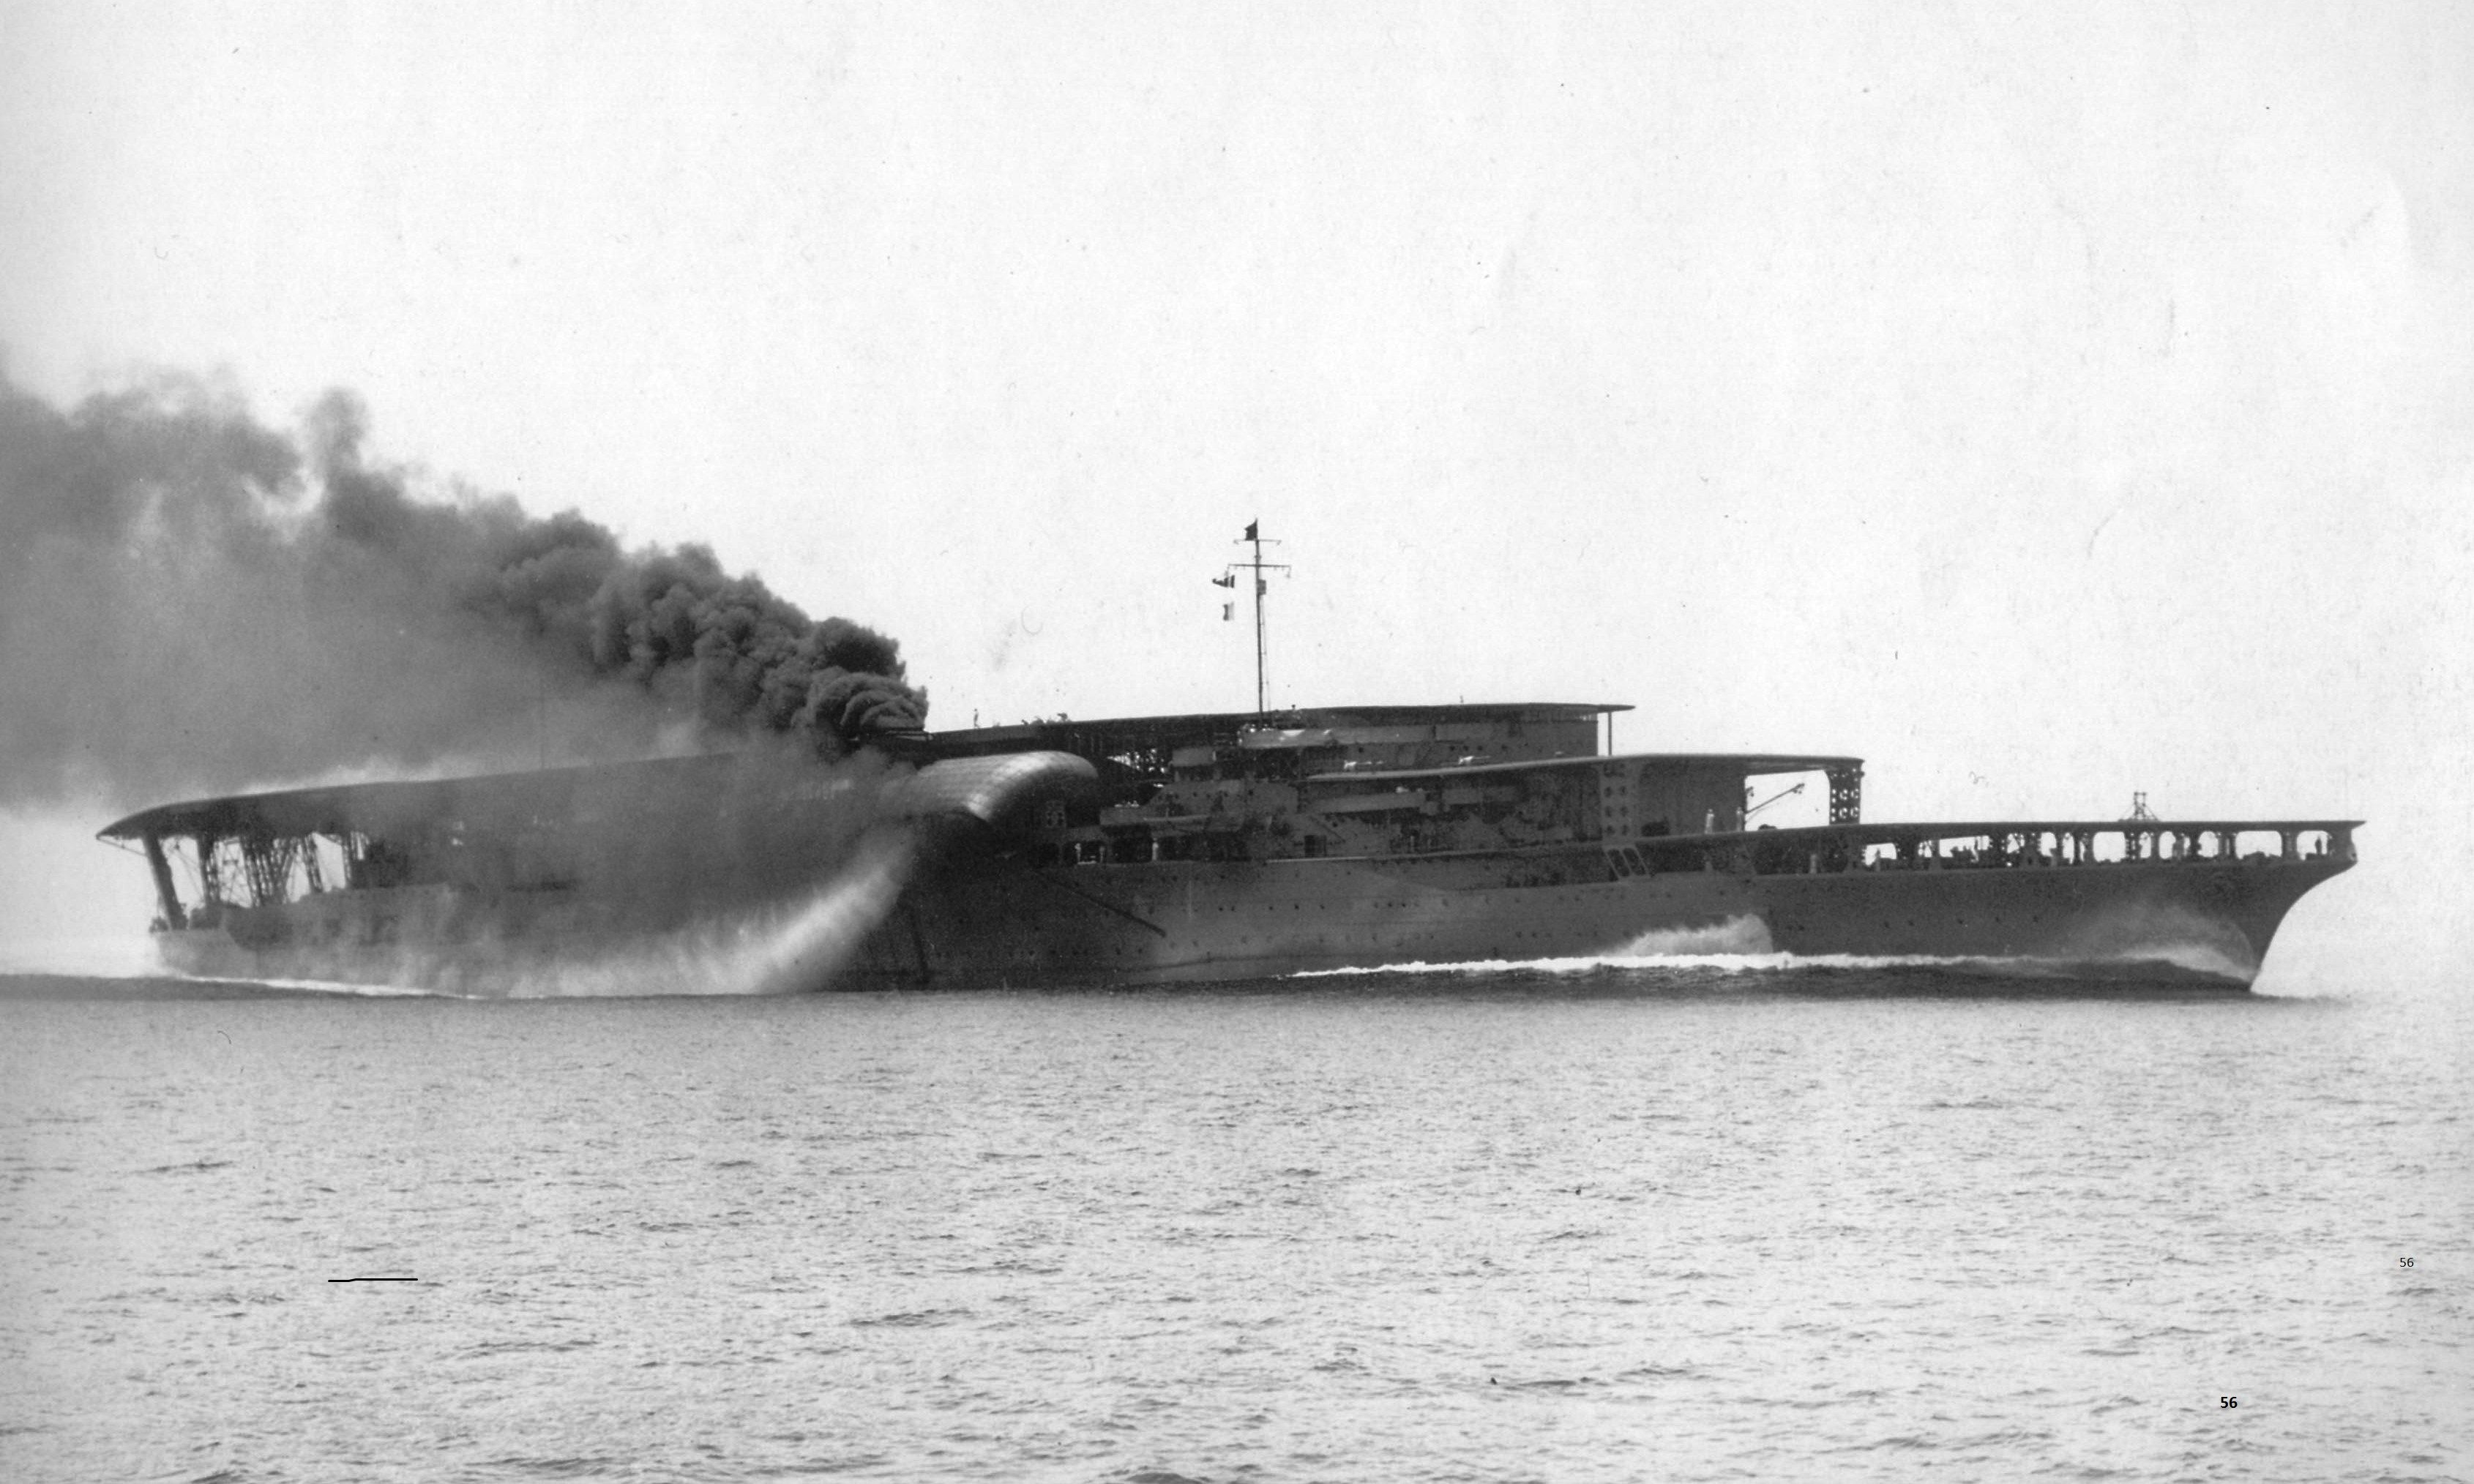 Japanese Aircraft Carrier Akagi 1931 when she had the 3 forward flight decks. Akagi rid herself of stack gases by means of one large funnel canted downward.